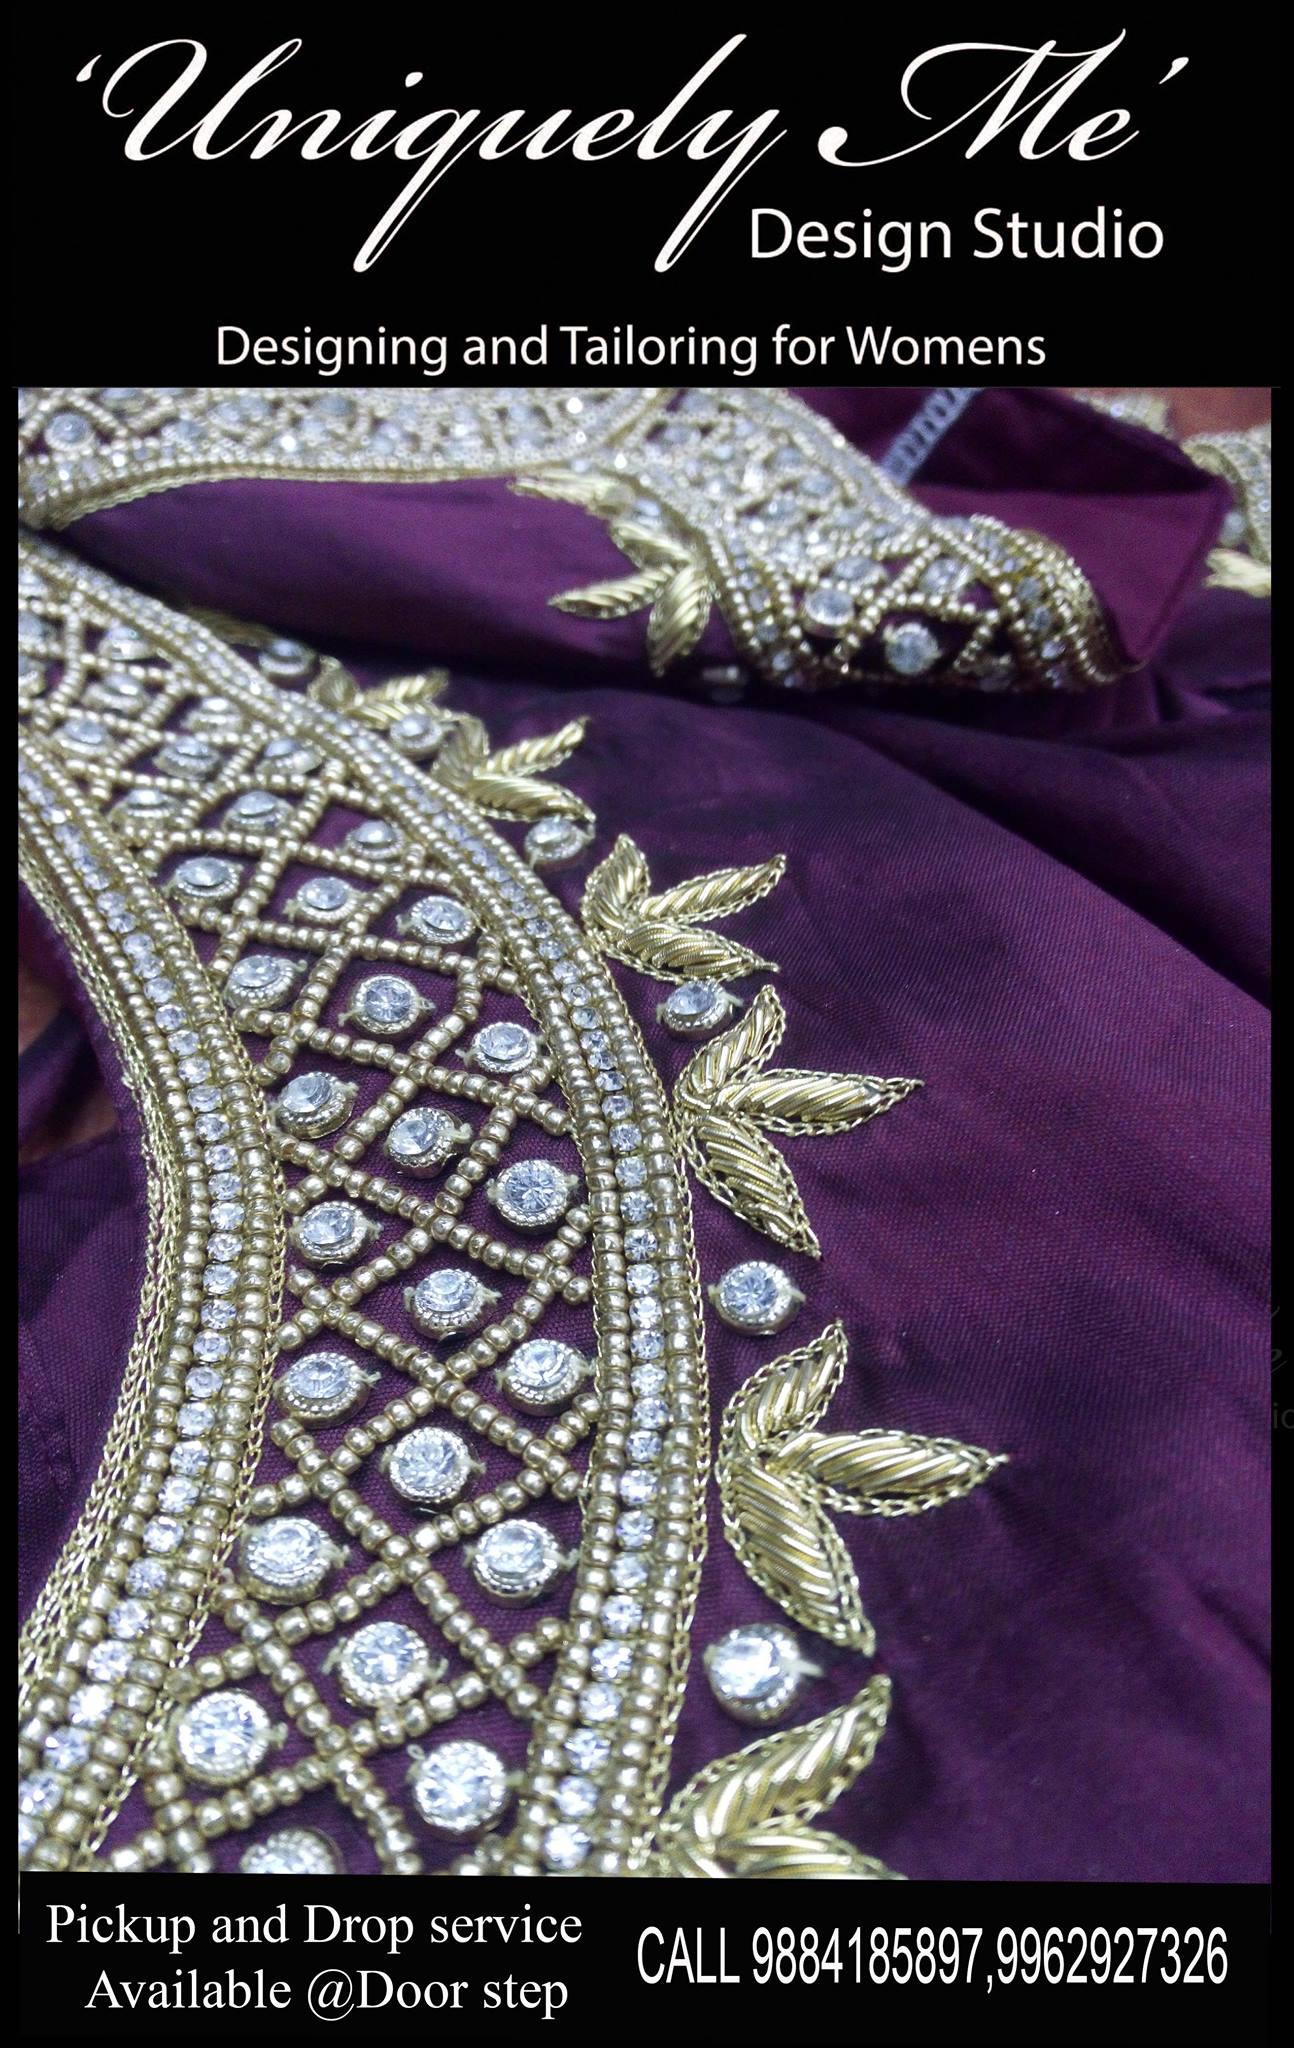 Bridal tailors in Mylapore